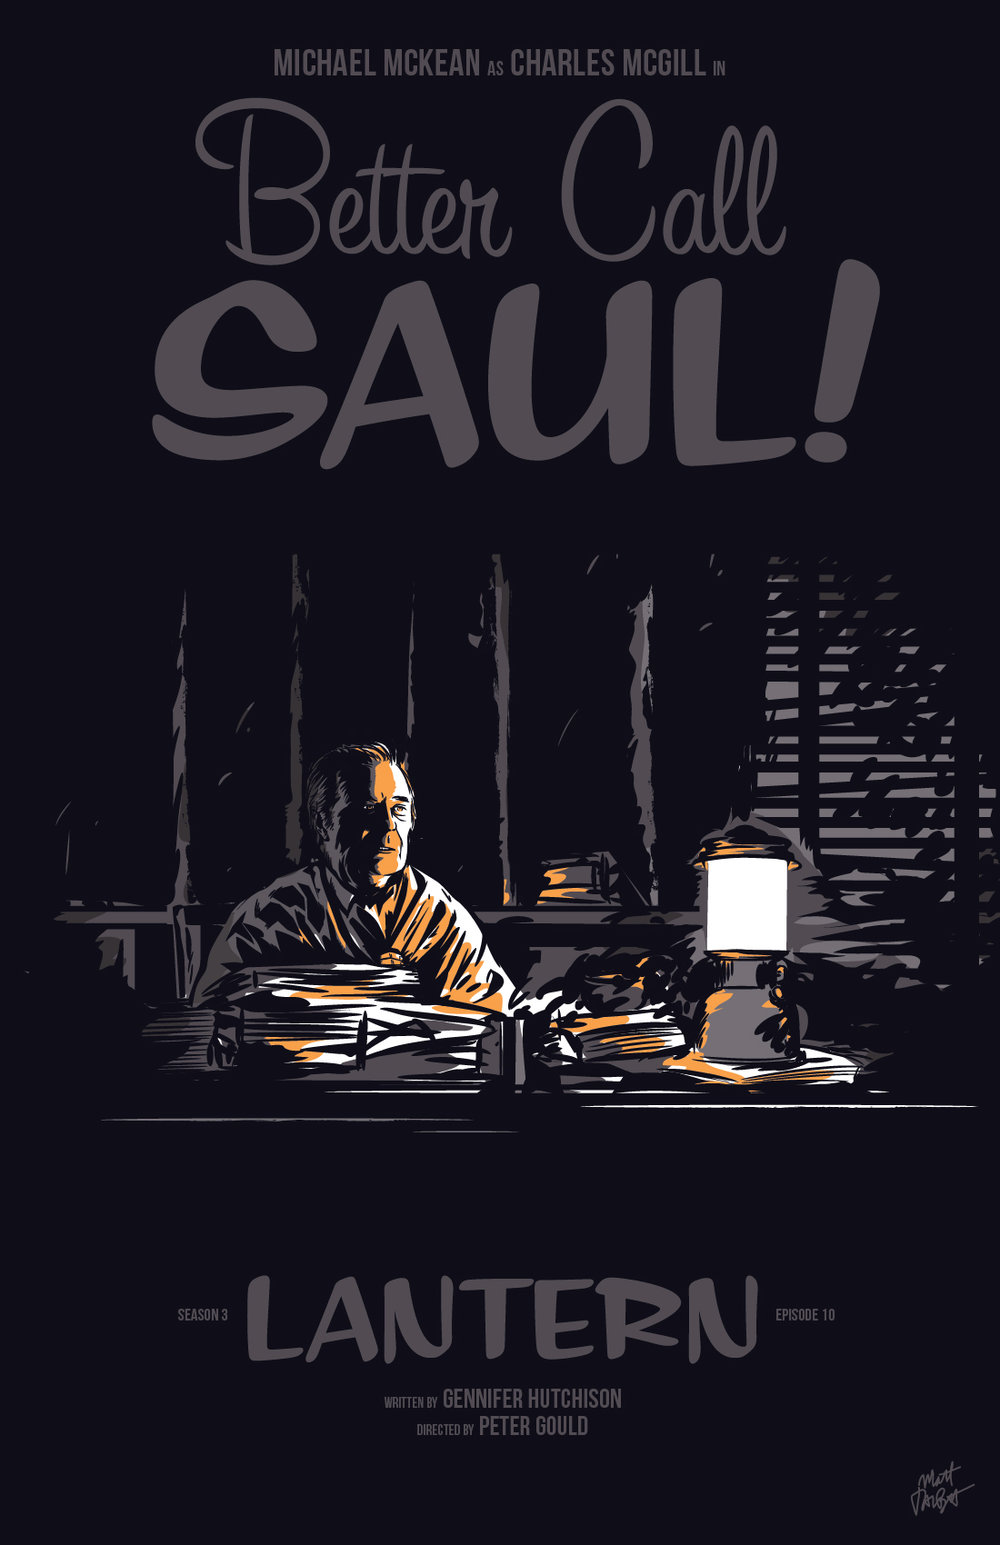 Better Call Saul episode 310, Lantern, poster by Matt Talbot